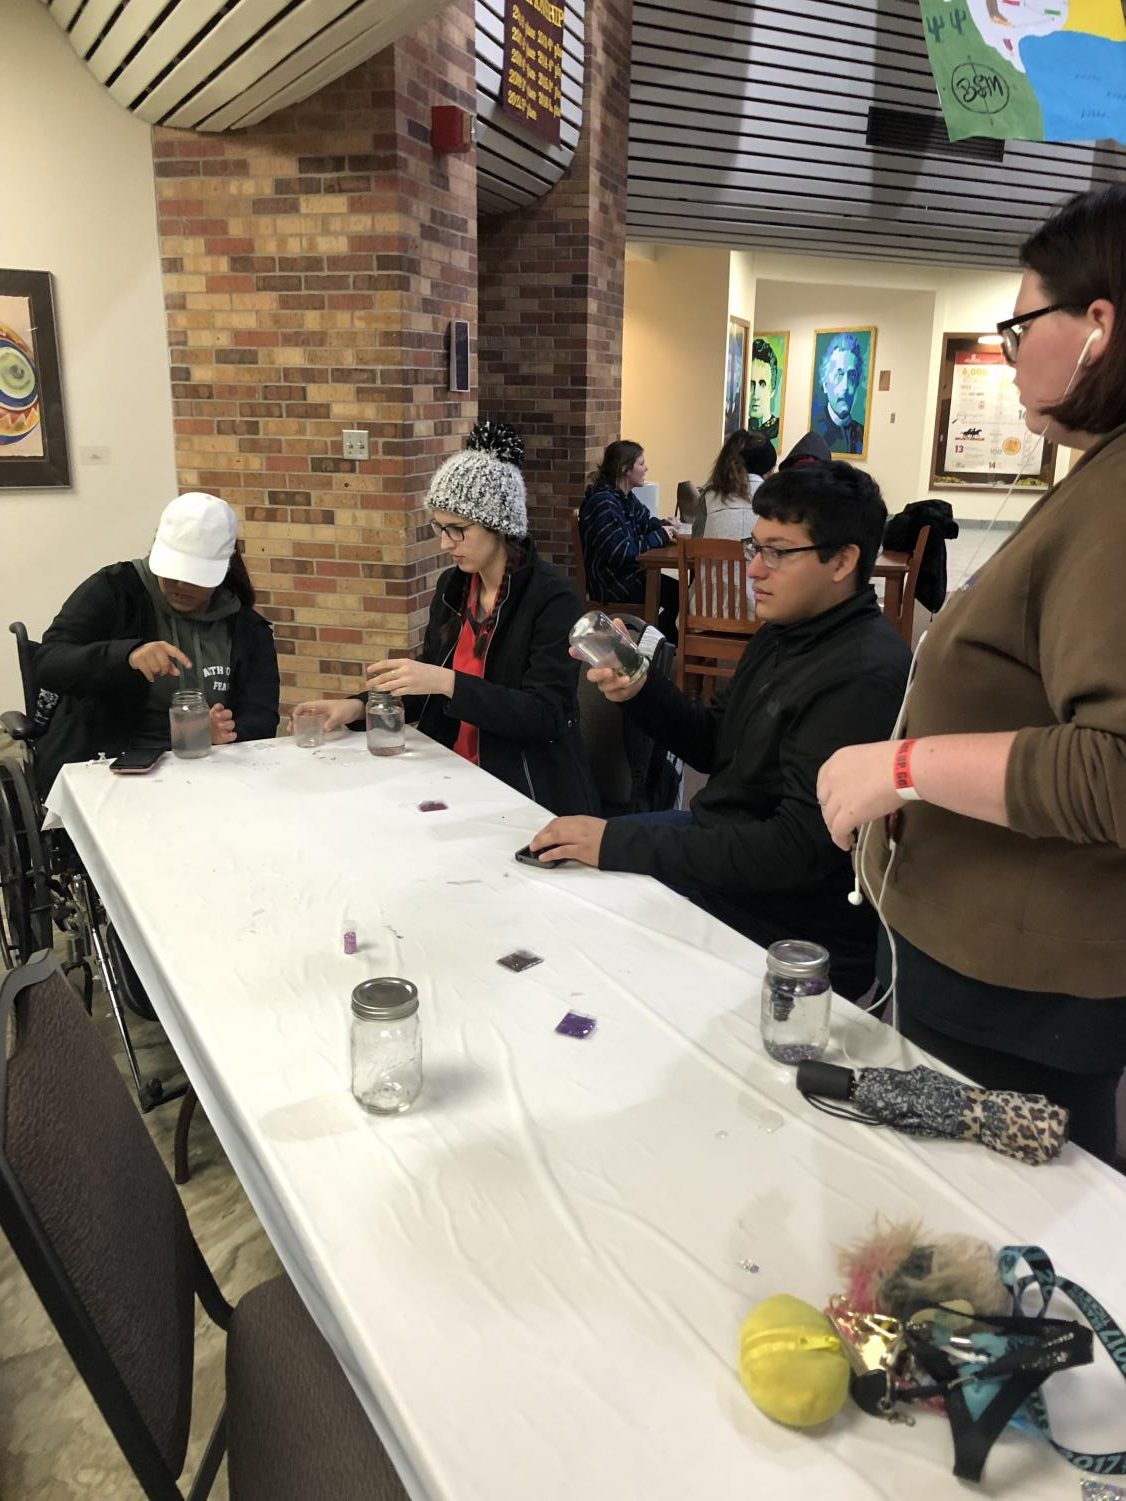 Dallas Wabbington, English sophomore,Kayleigh Stone, political science sophomore, Lorenzo Paredes, biology freshmen, Taylor Mash, chemistry sophomore sit at a table together while decorating their snow globes.